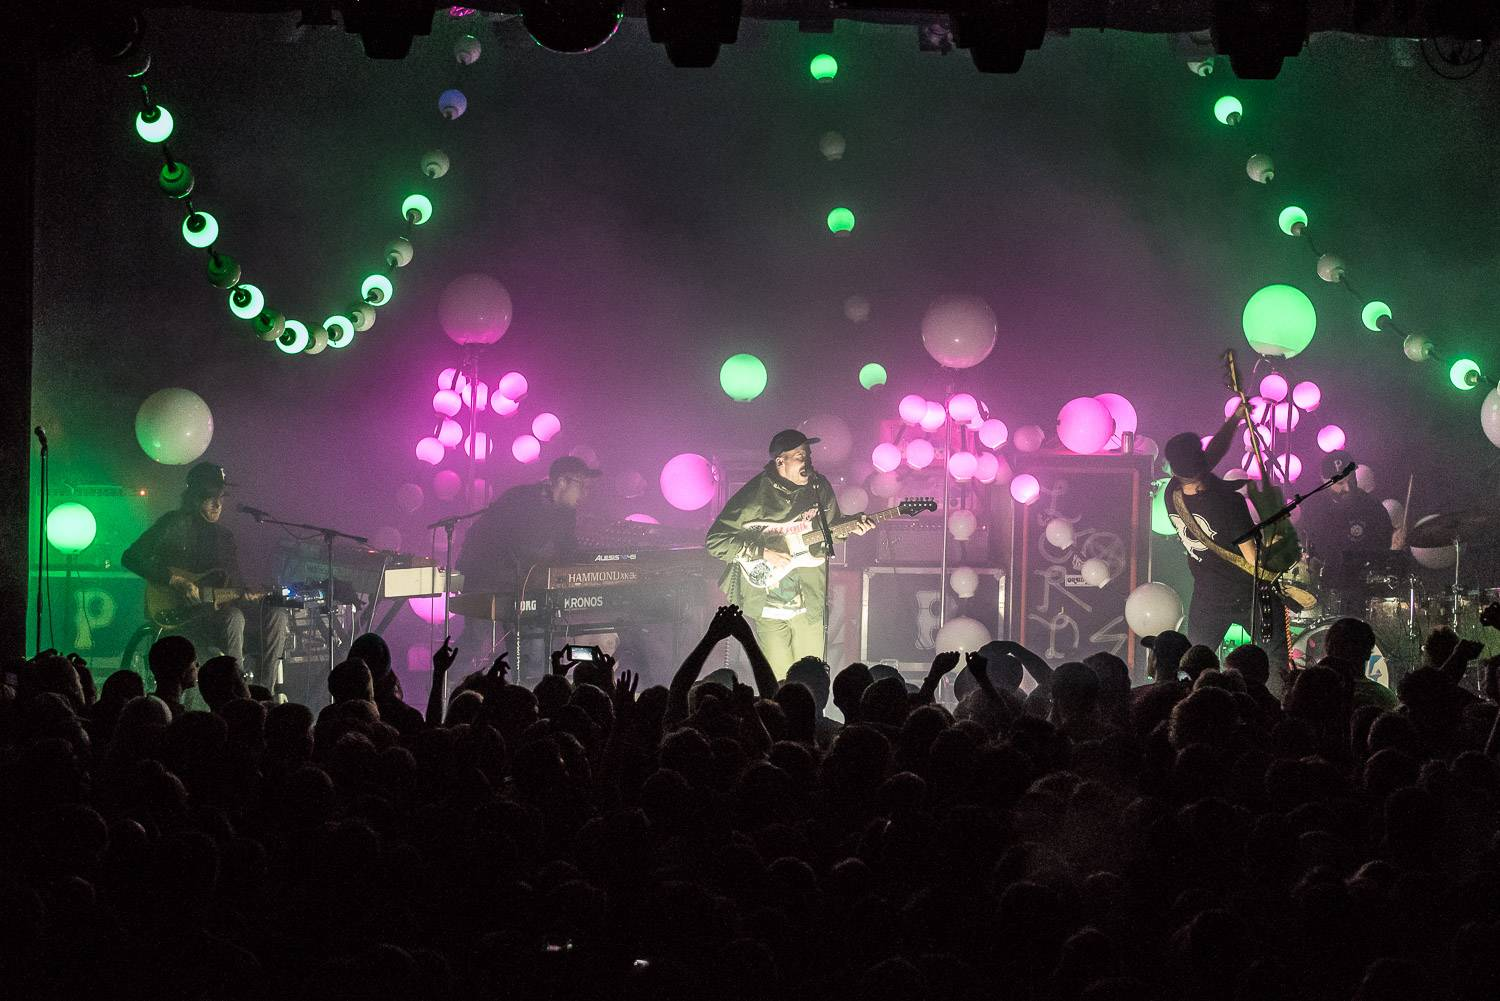 Portugal. The Man at the Commodore Ballroom, Vancouver, Nov. 17 2016. Pavel Boiko photo.